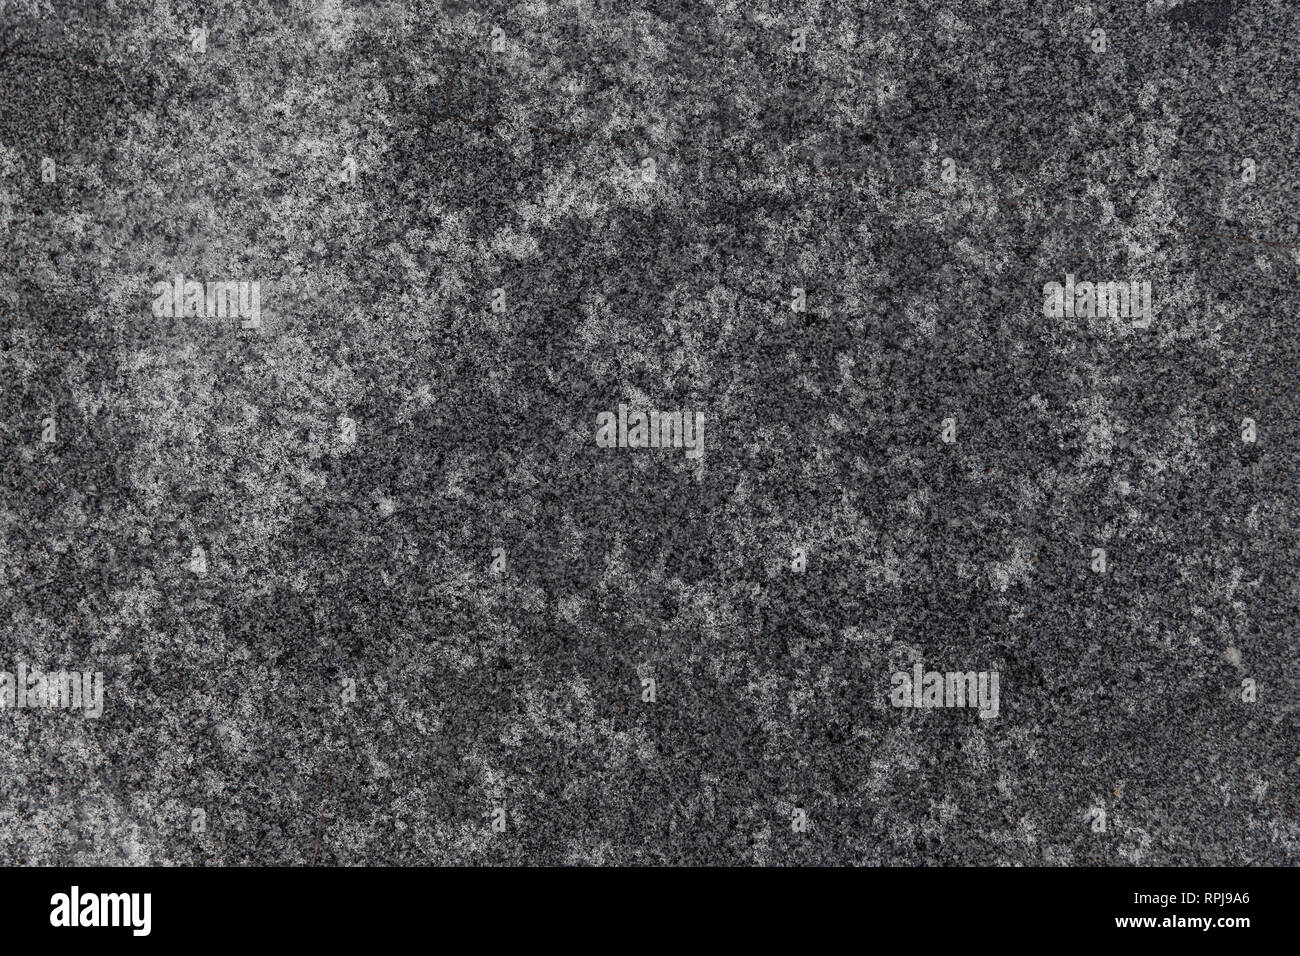 Black And White Marble Texture Background High Resolution Stock Photo Alamy